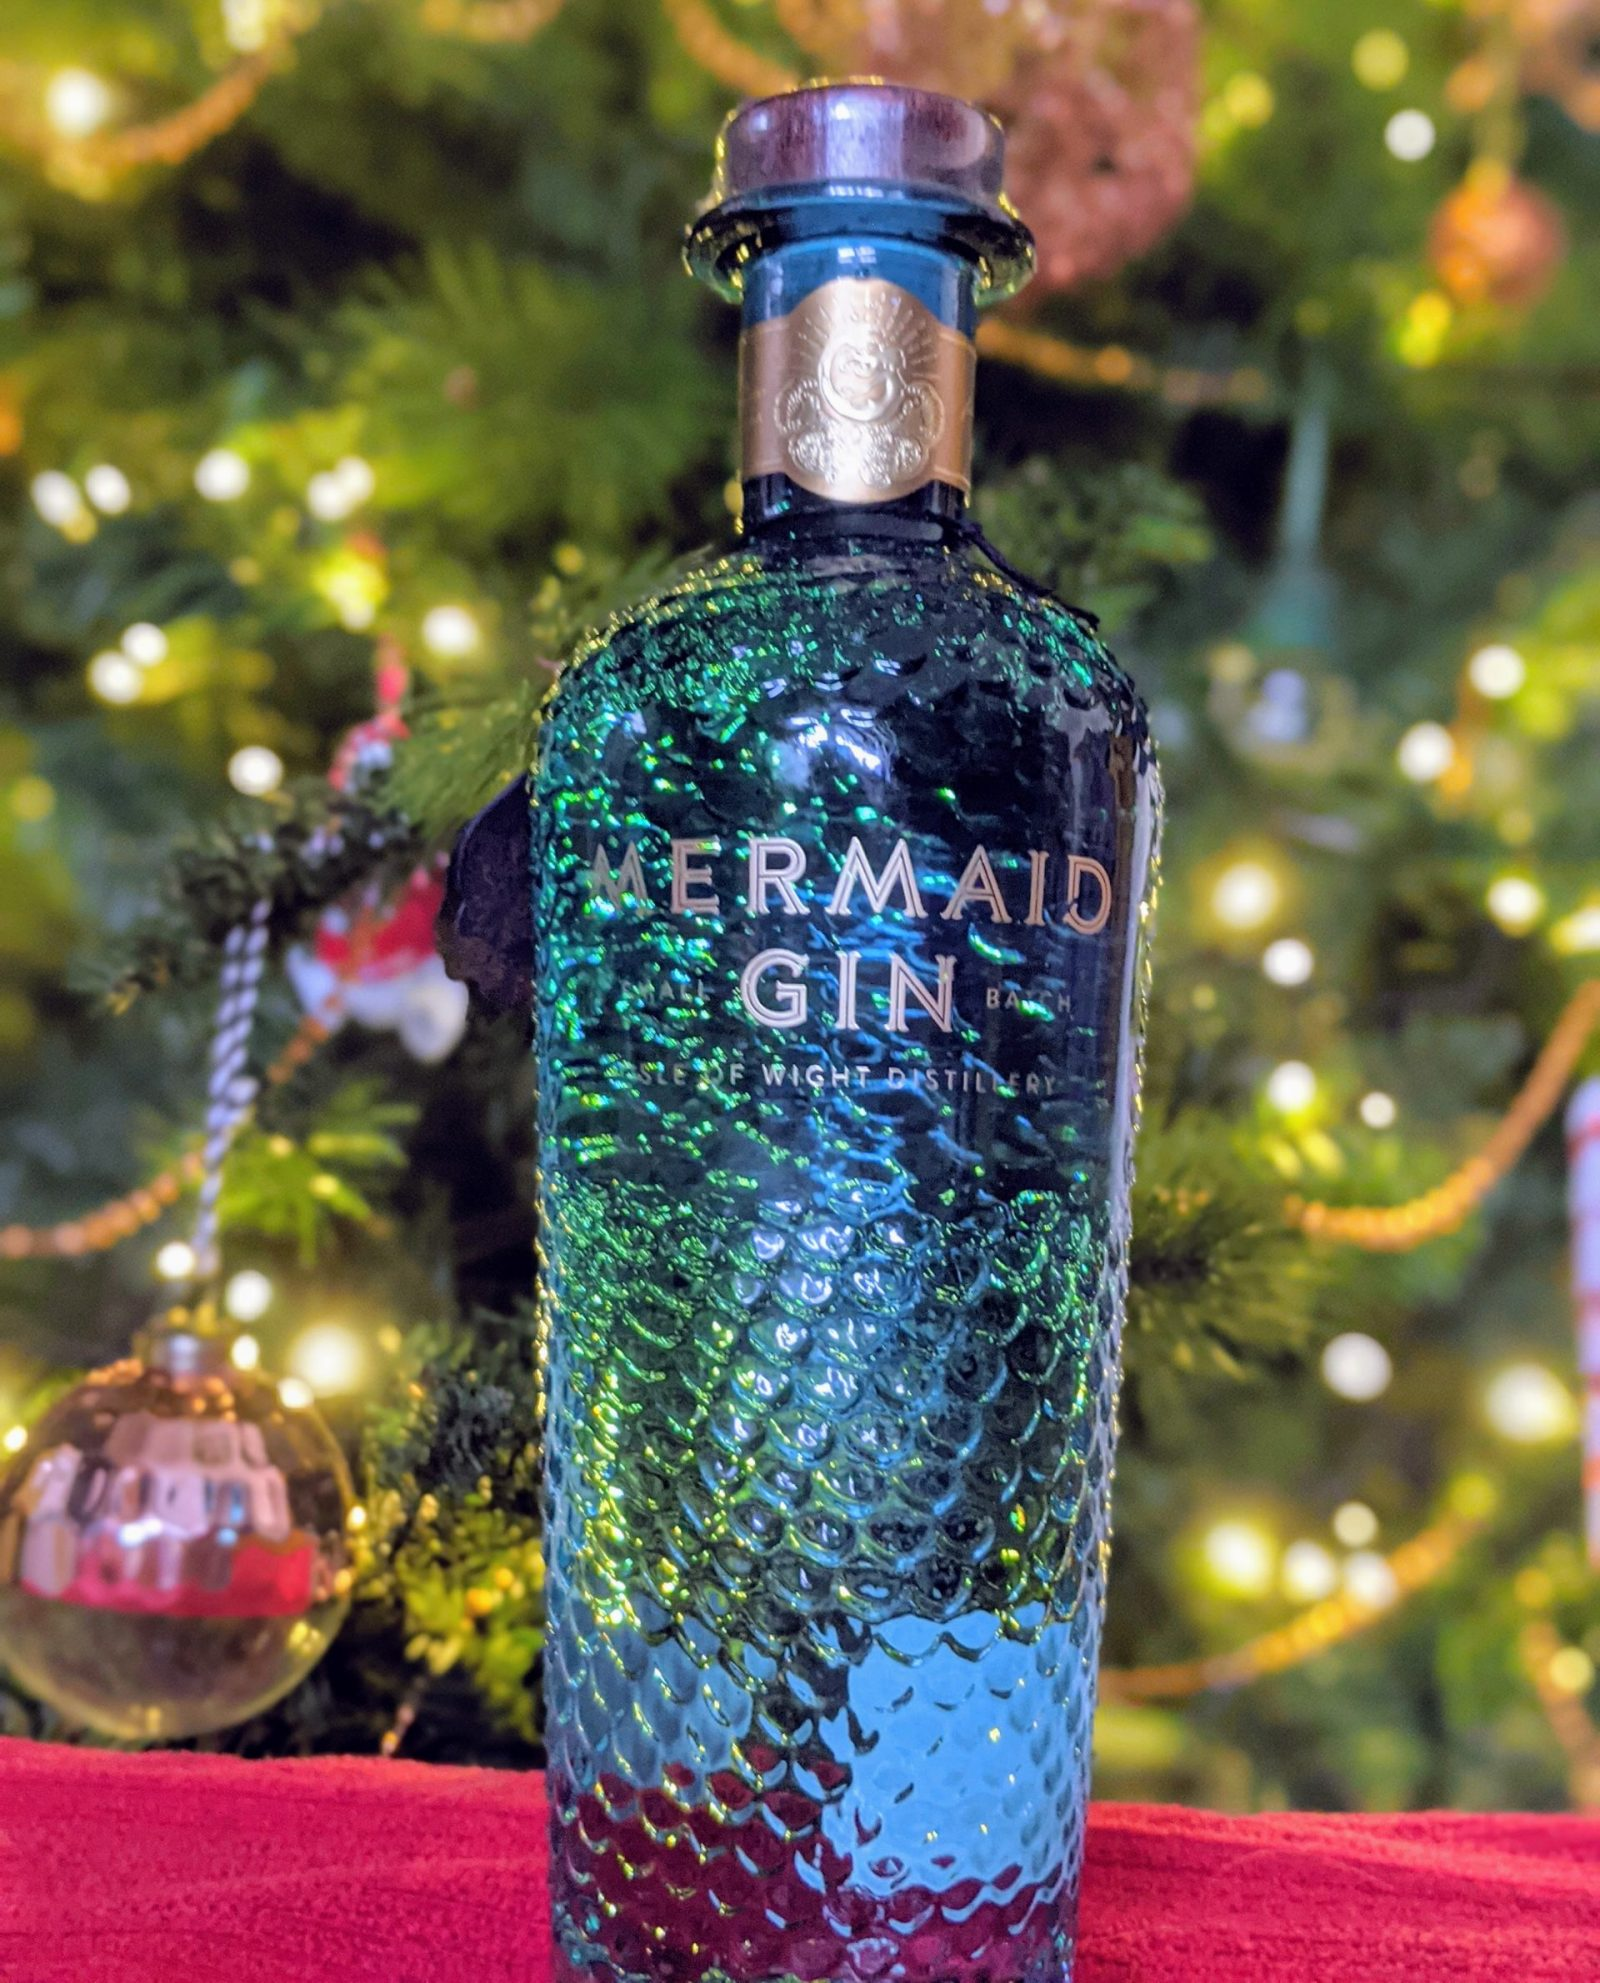 A bottle of Mermaid Gin in front of a Christmas tree